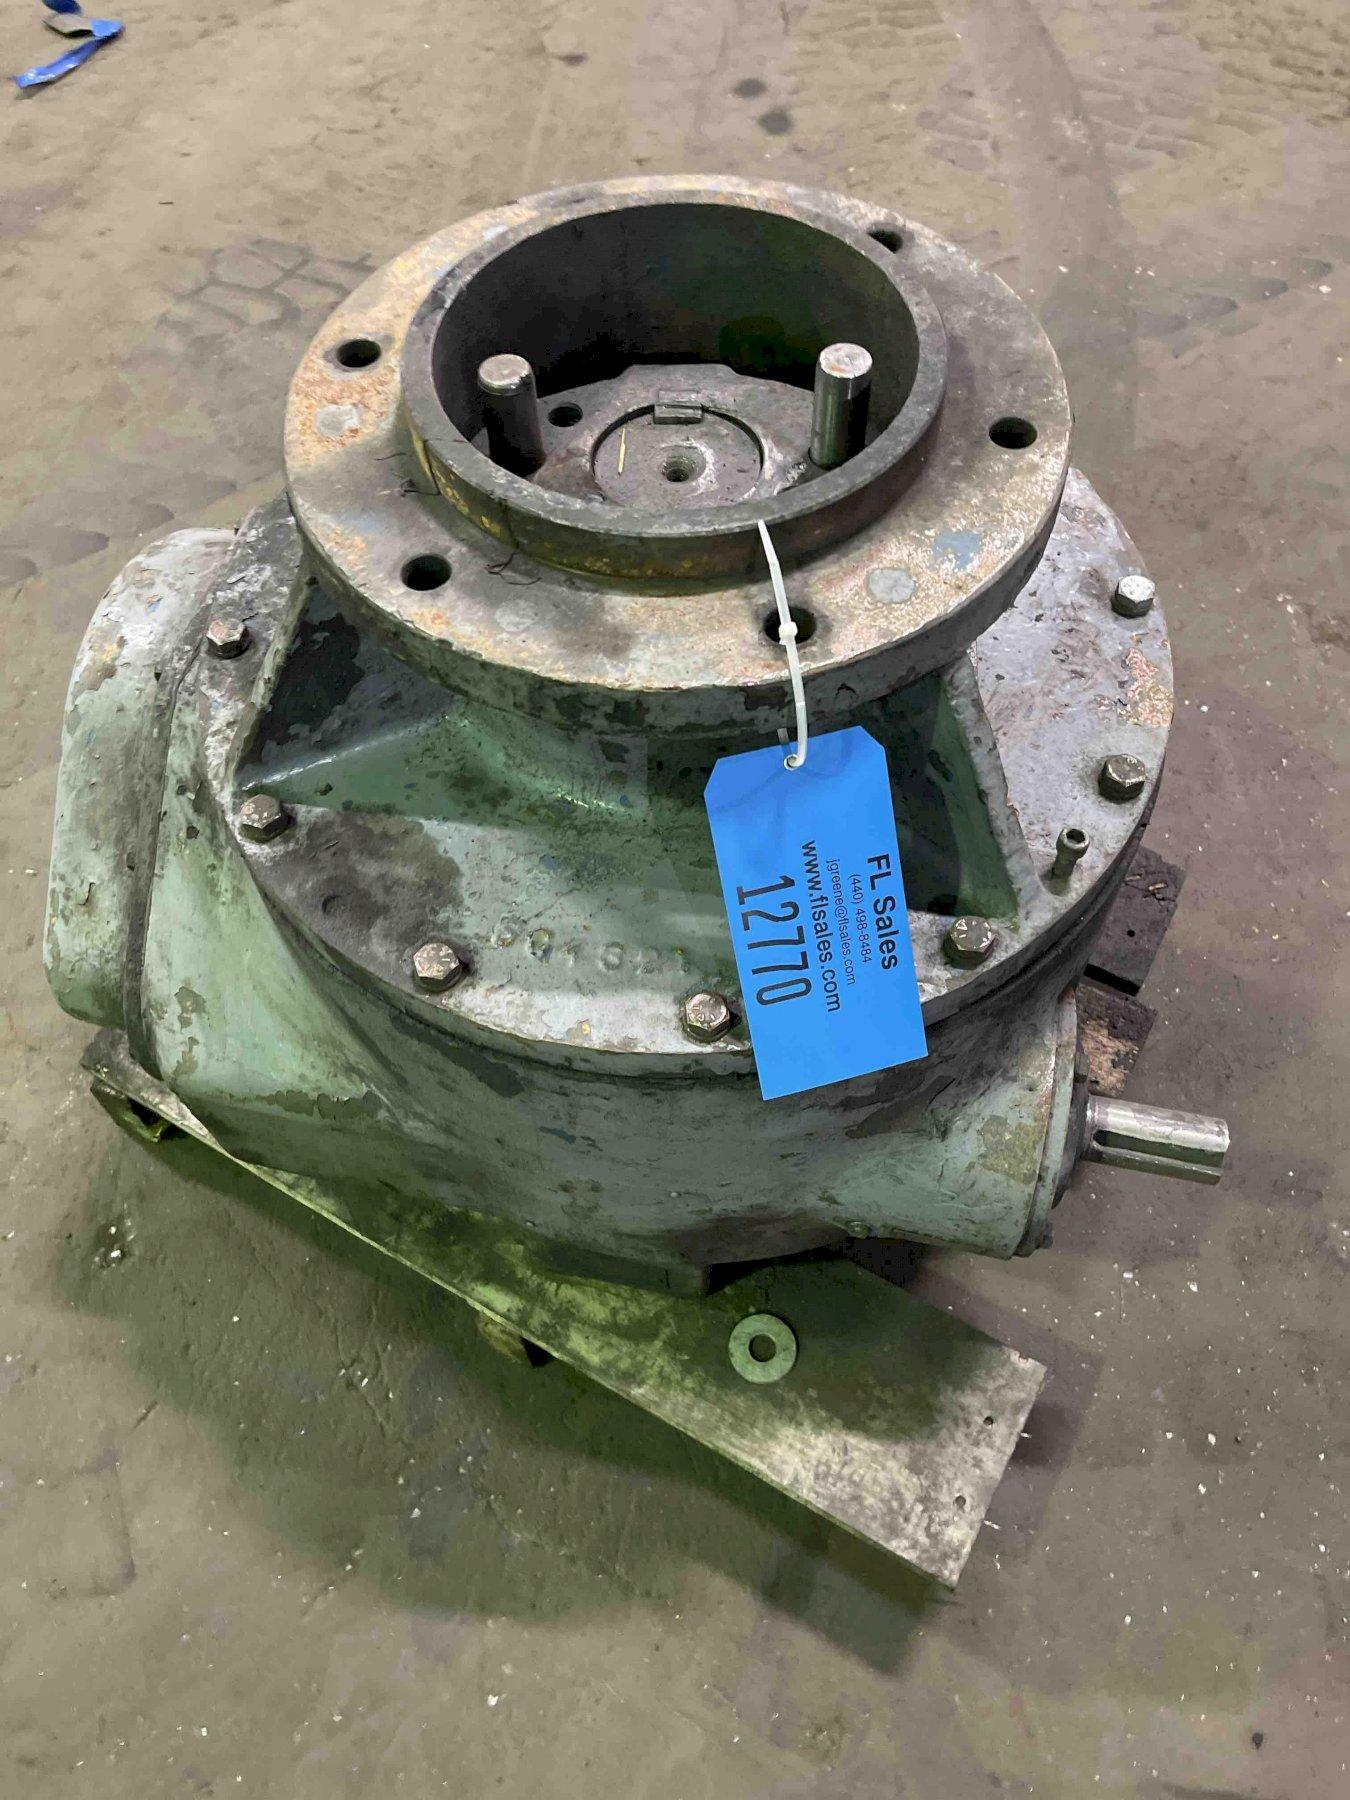 Simpson model 1.5 gearbox used